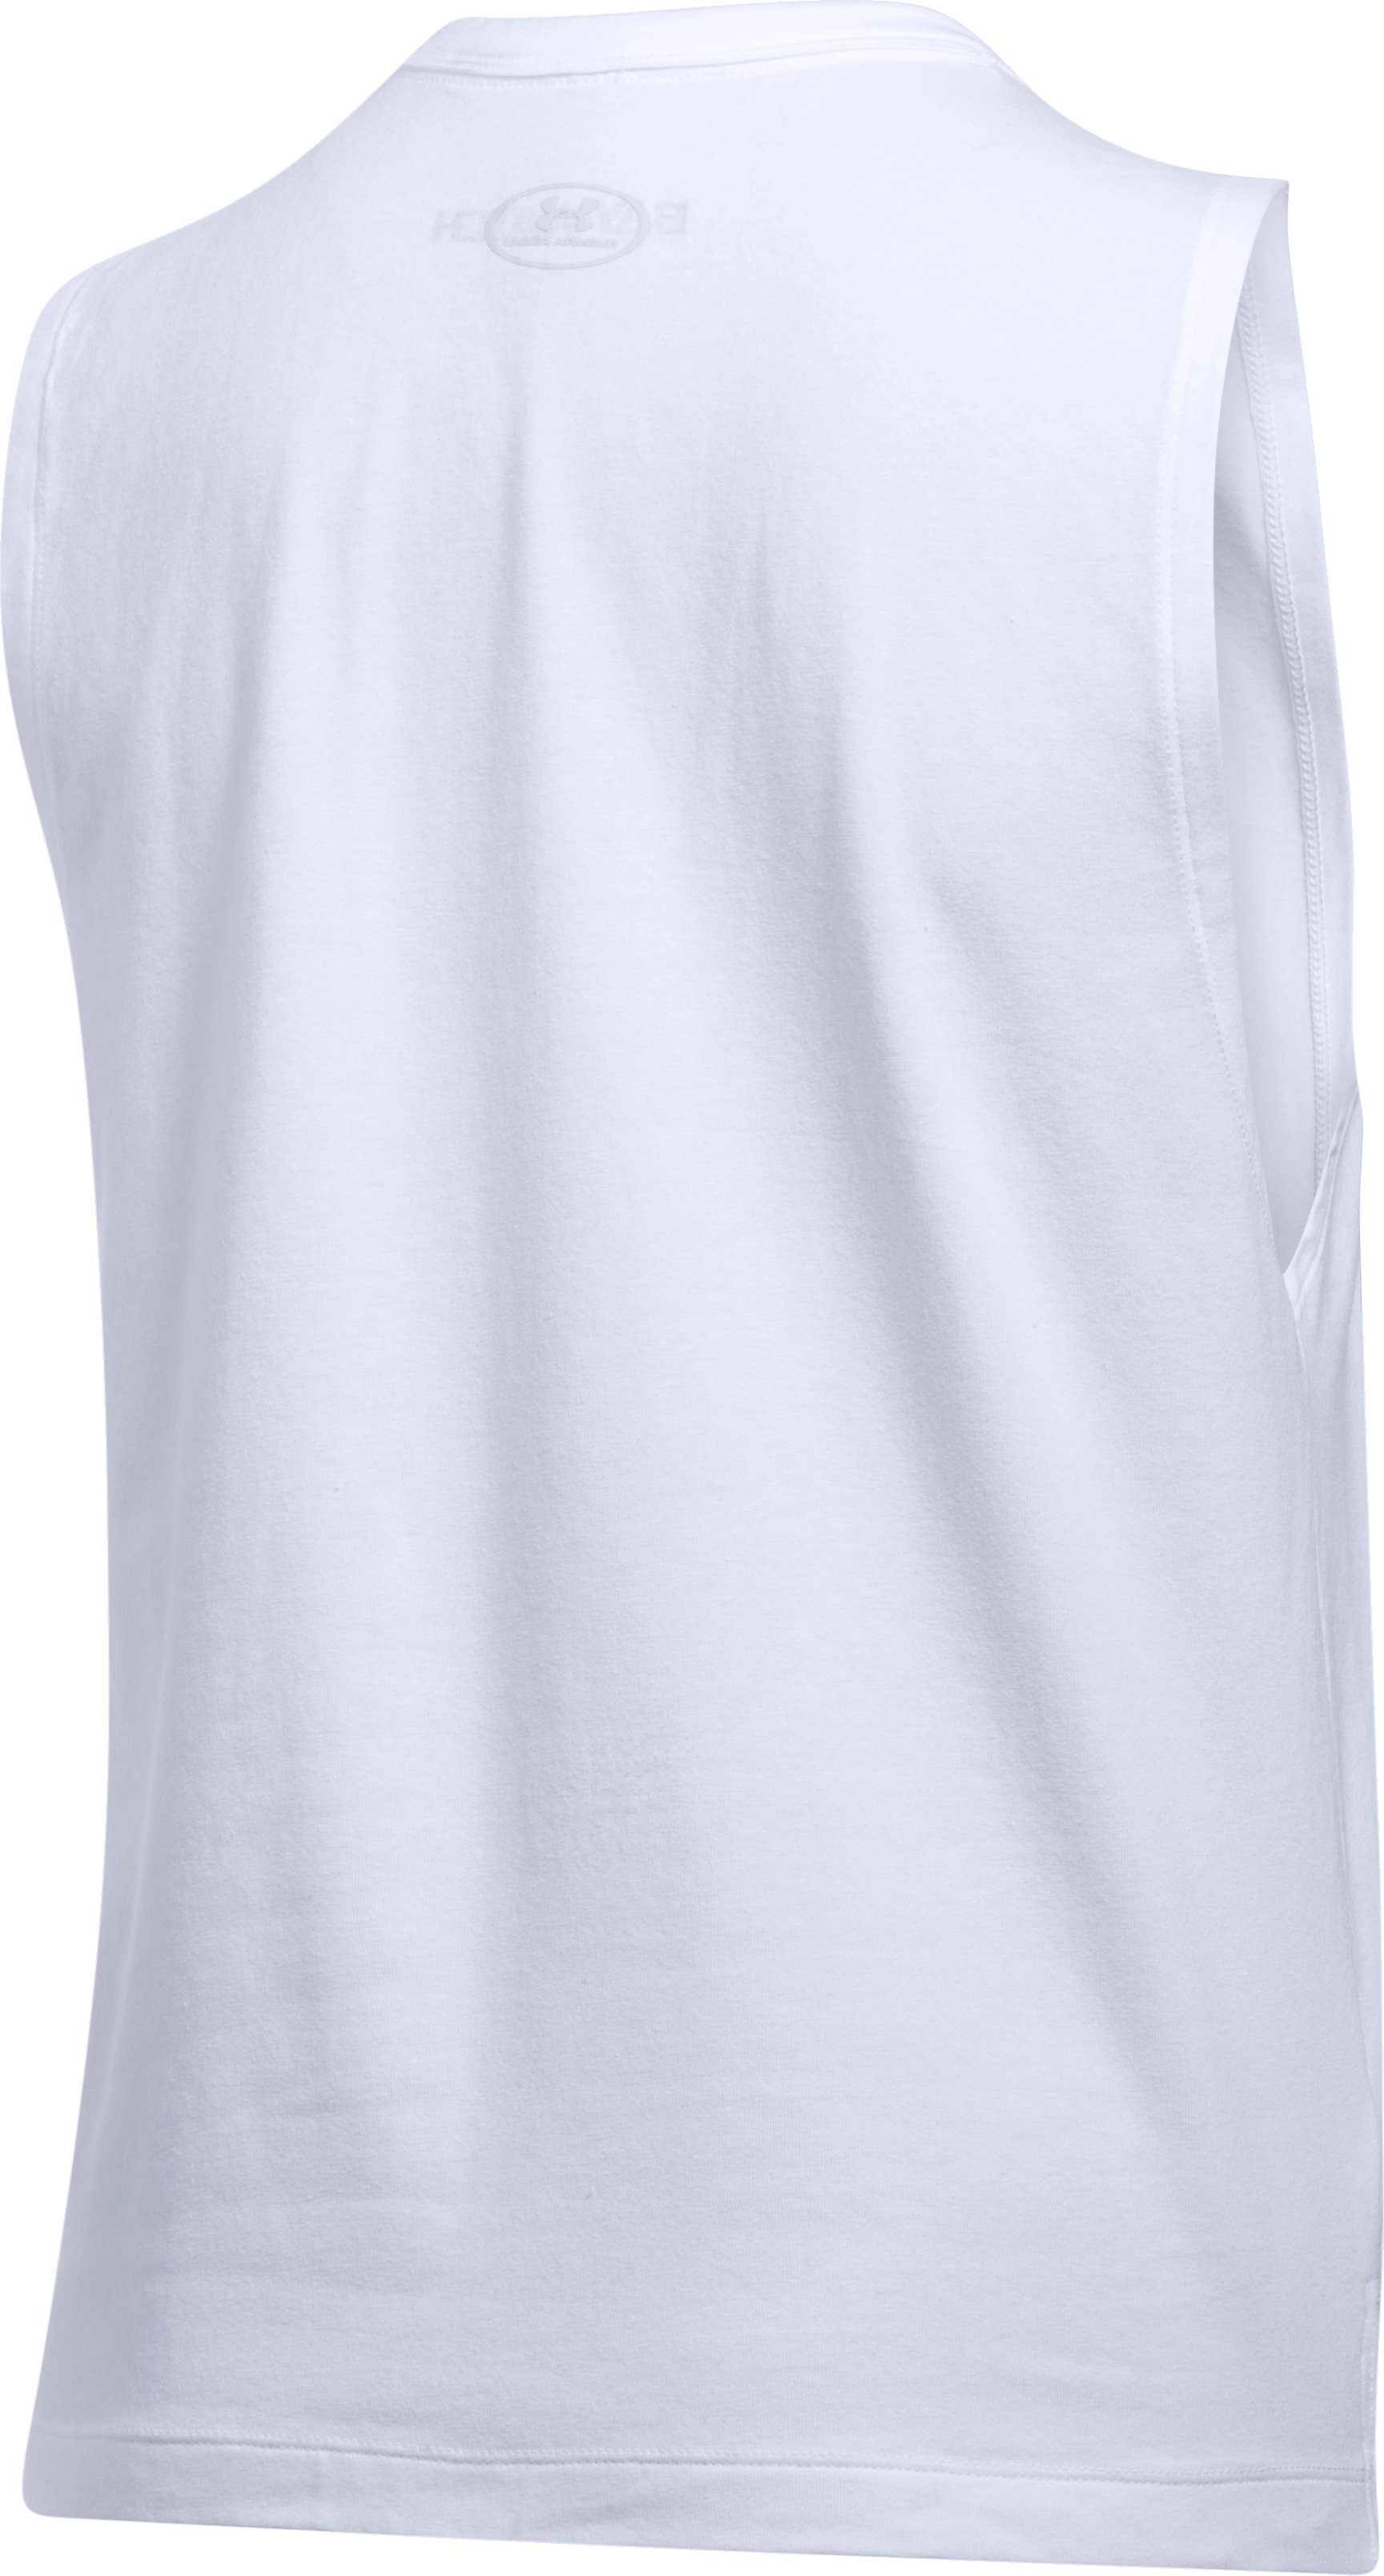 Women's Baywatch Original Muscle T, White, undefined